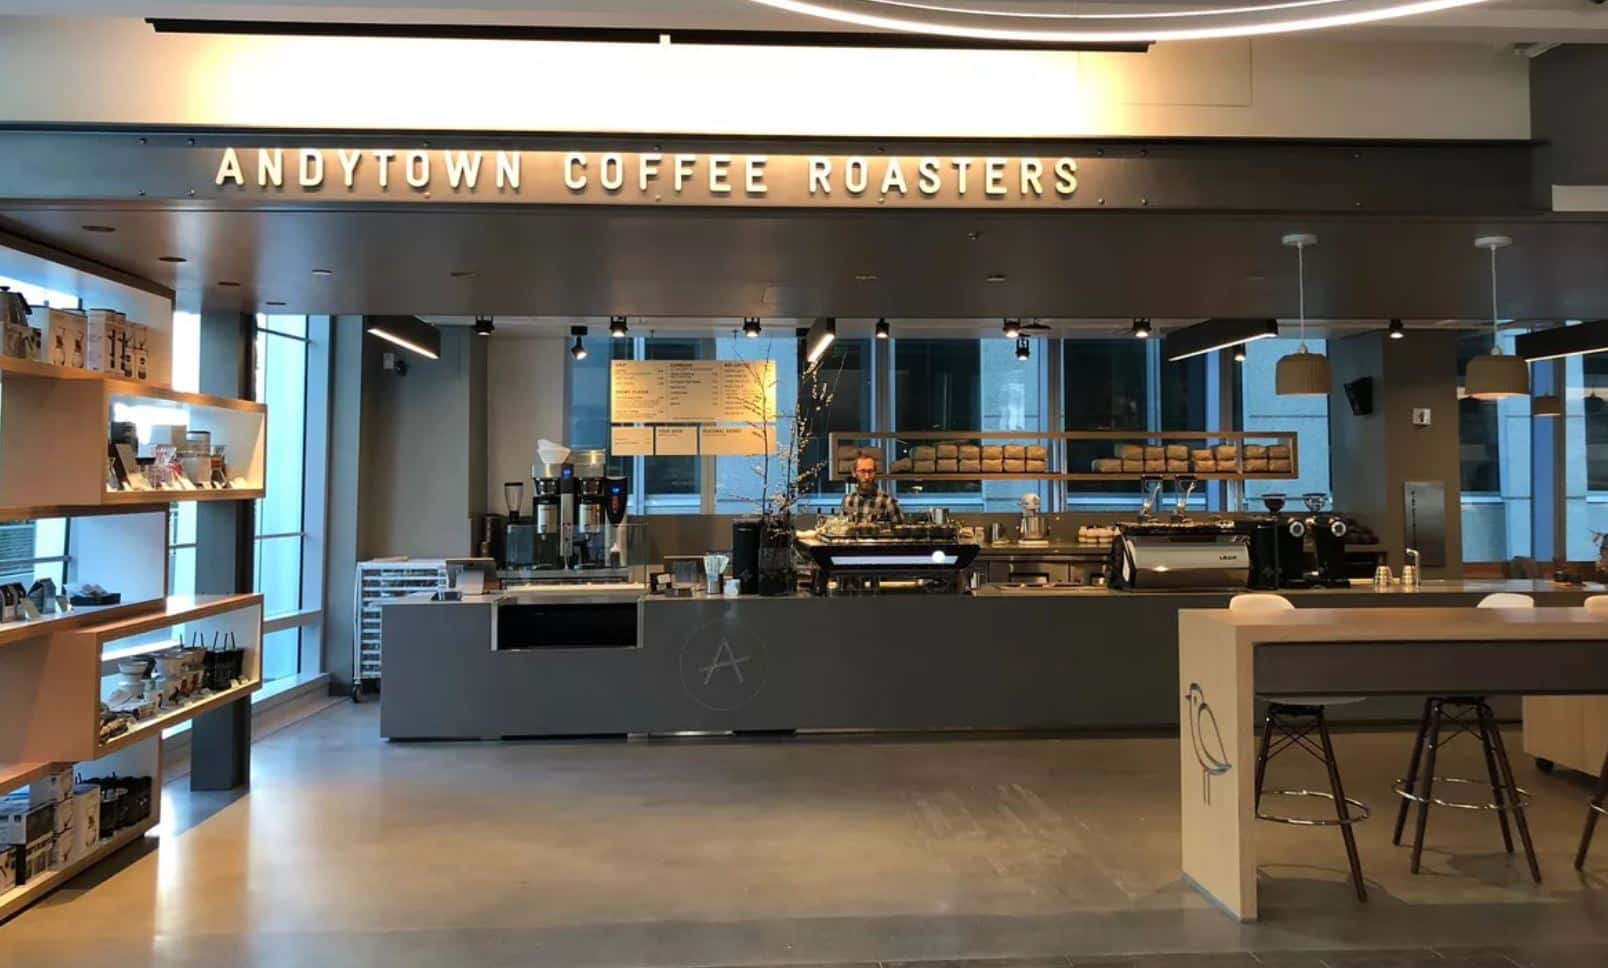 Andytown Coffee Roasters in San Francisco